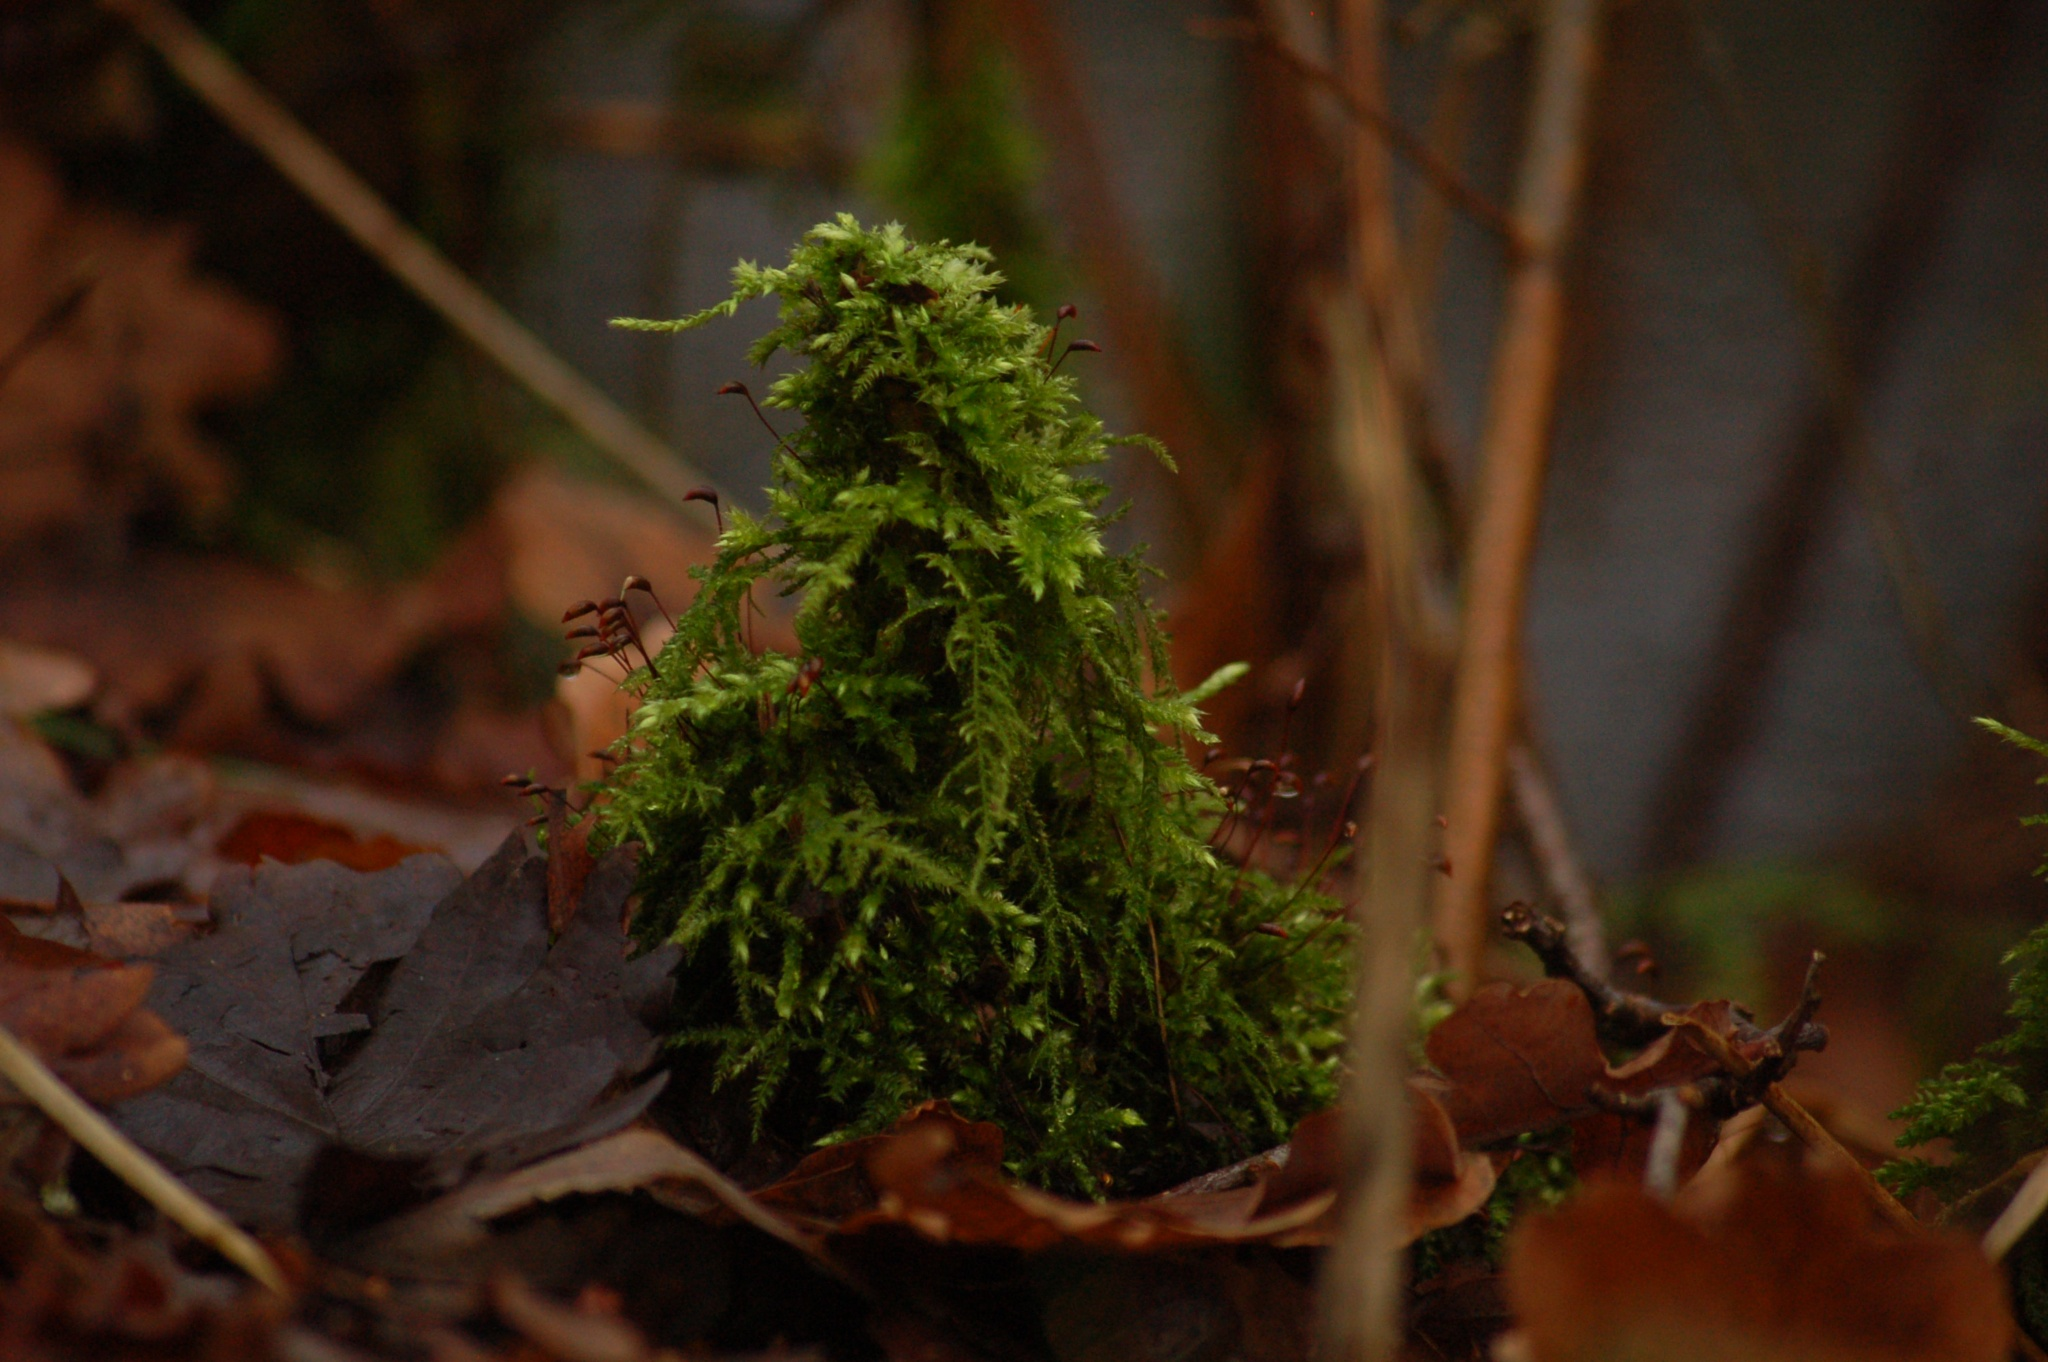 Mossy moss by vanetty